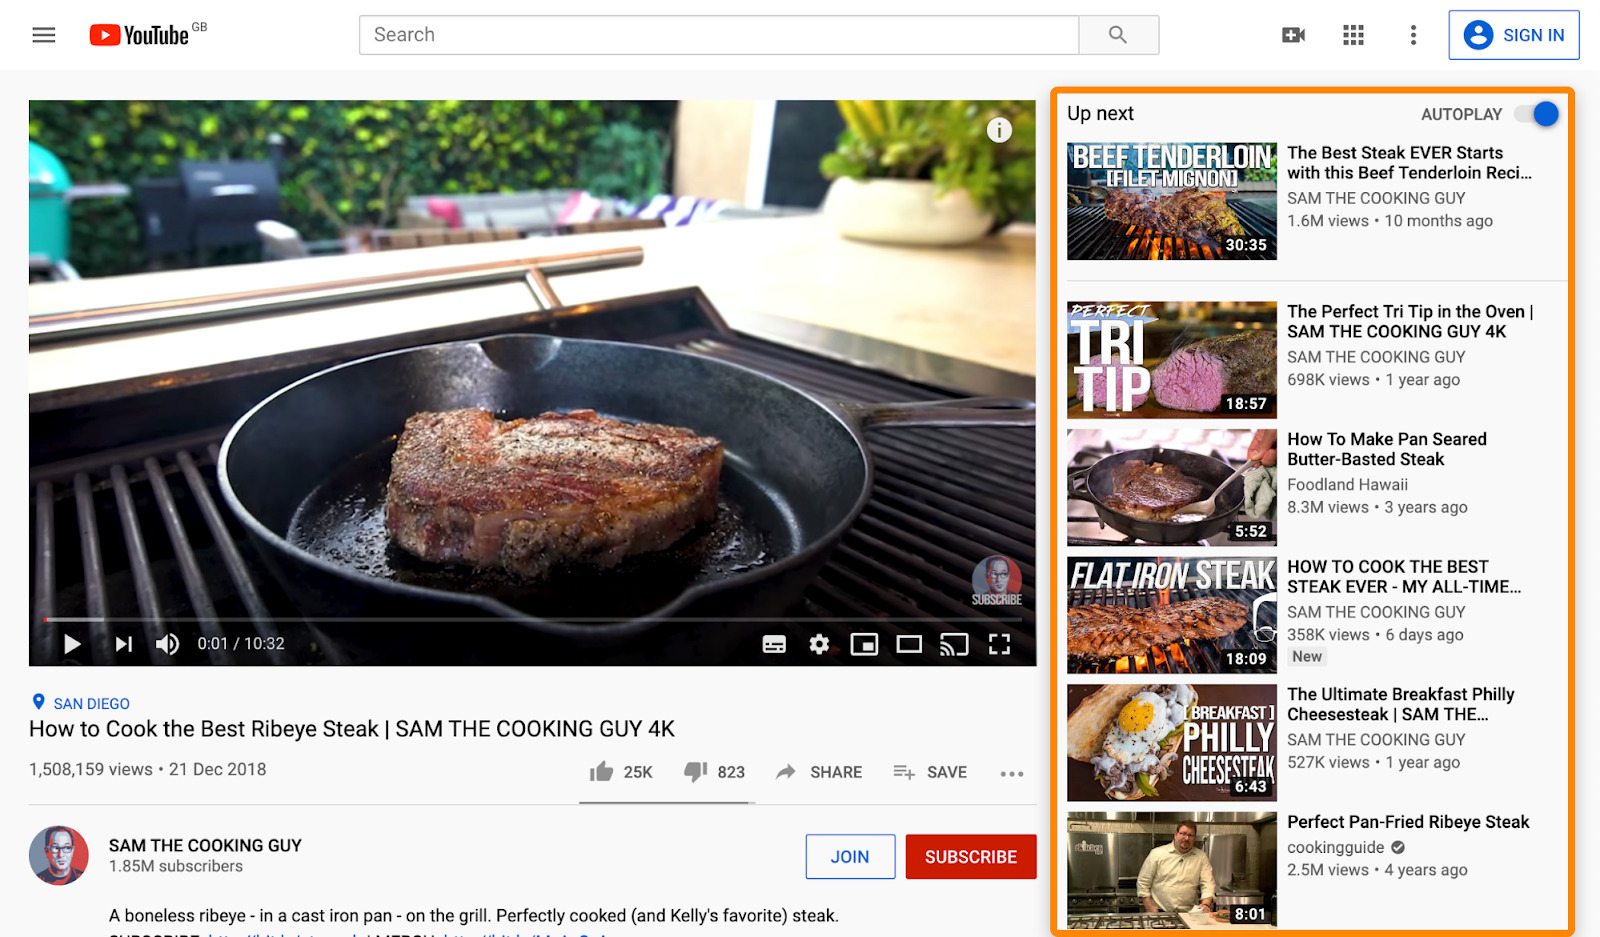 2 youtube steak recipes